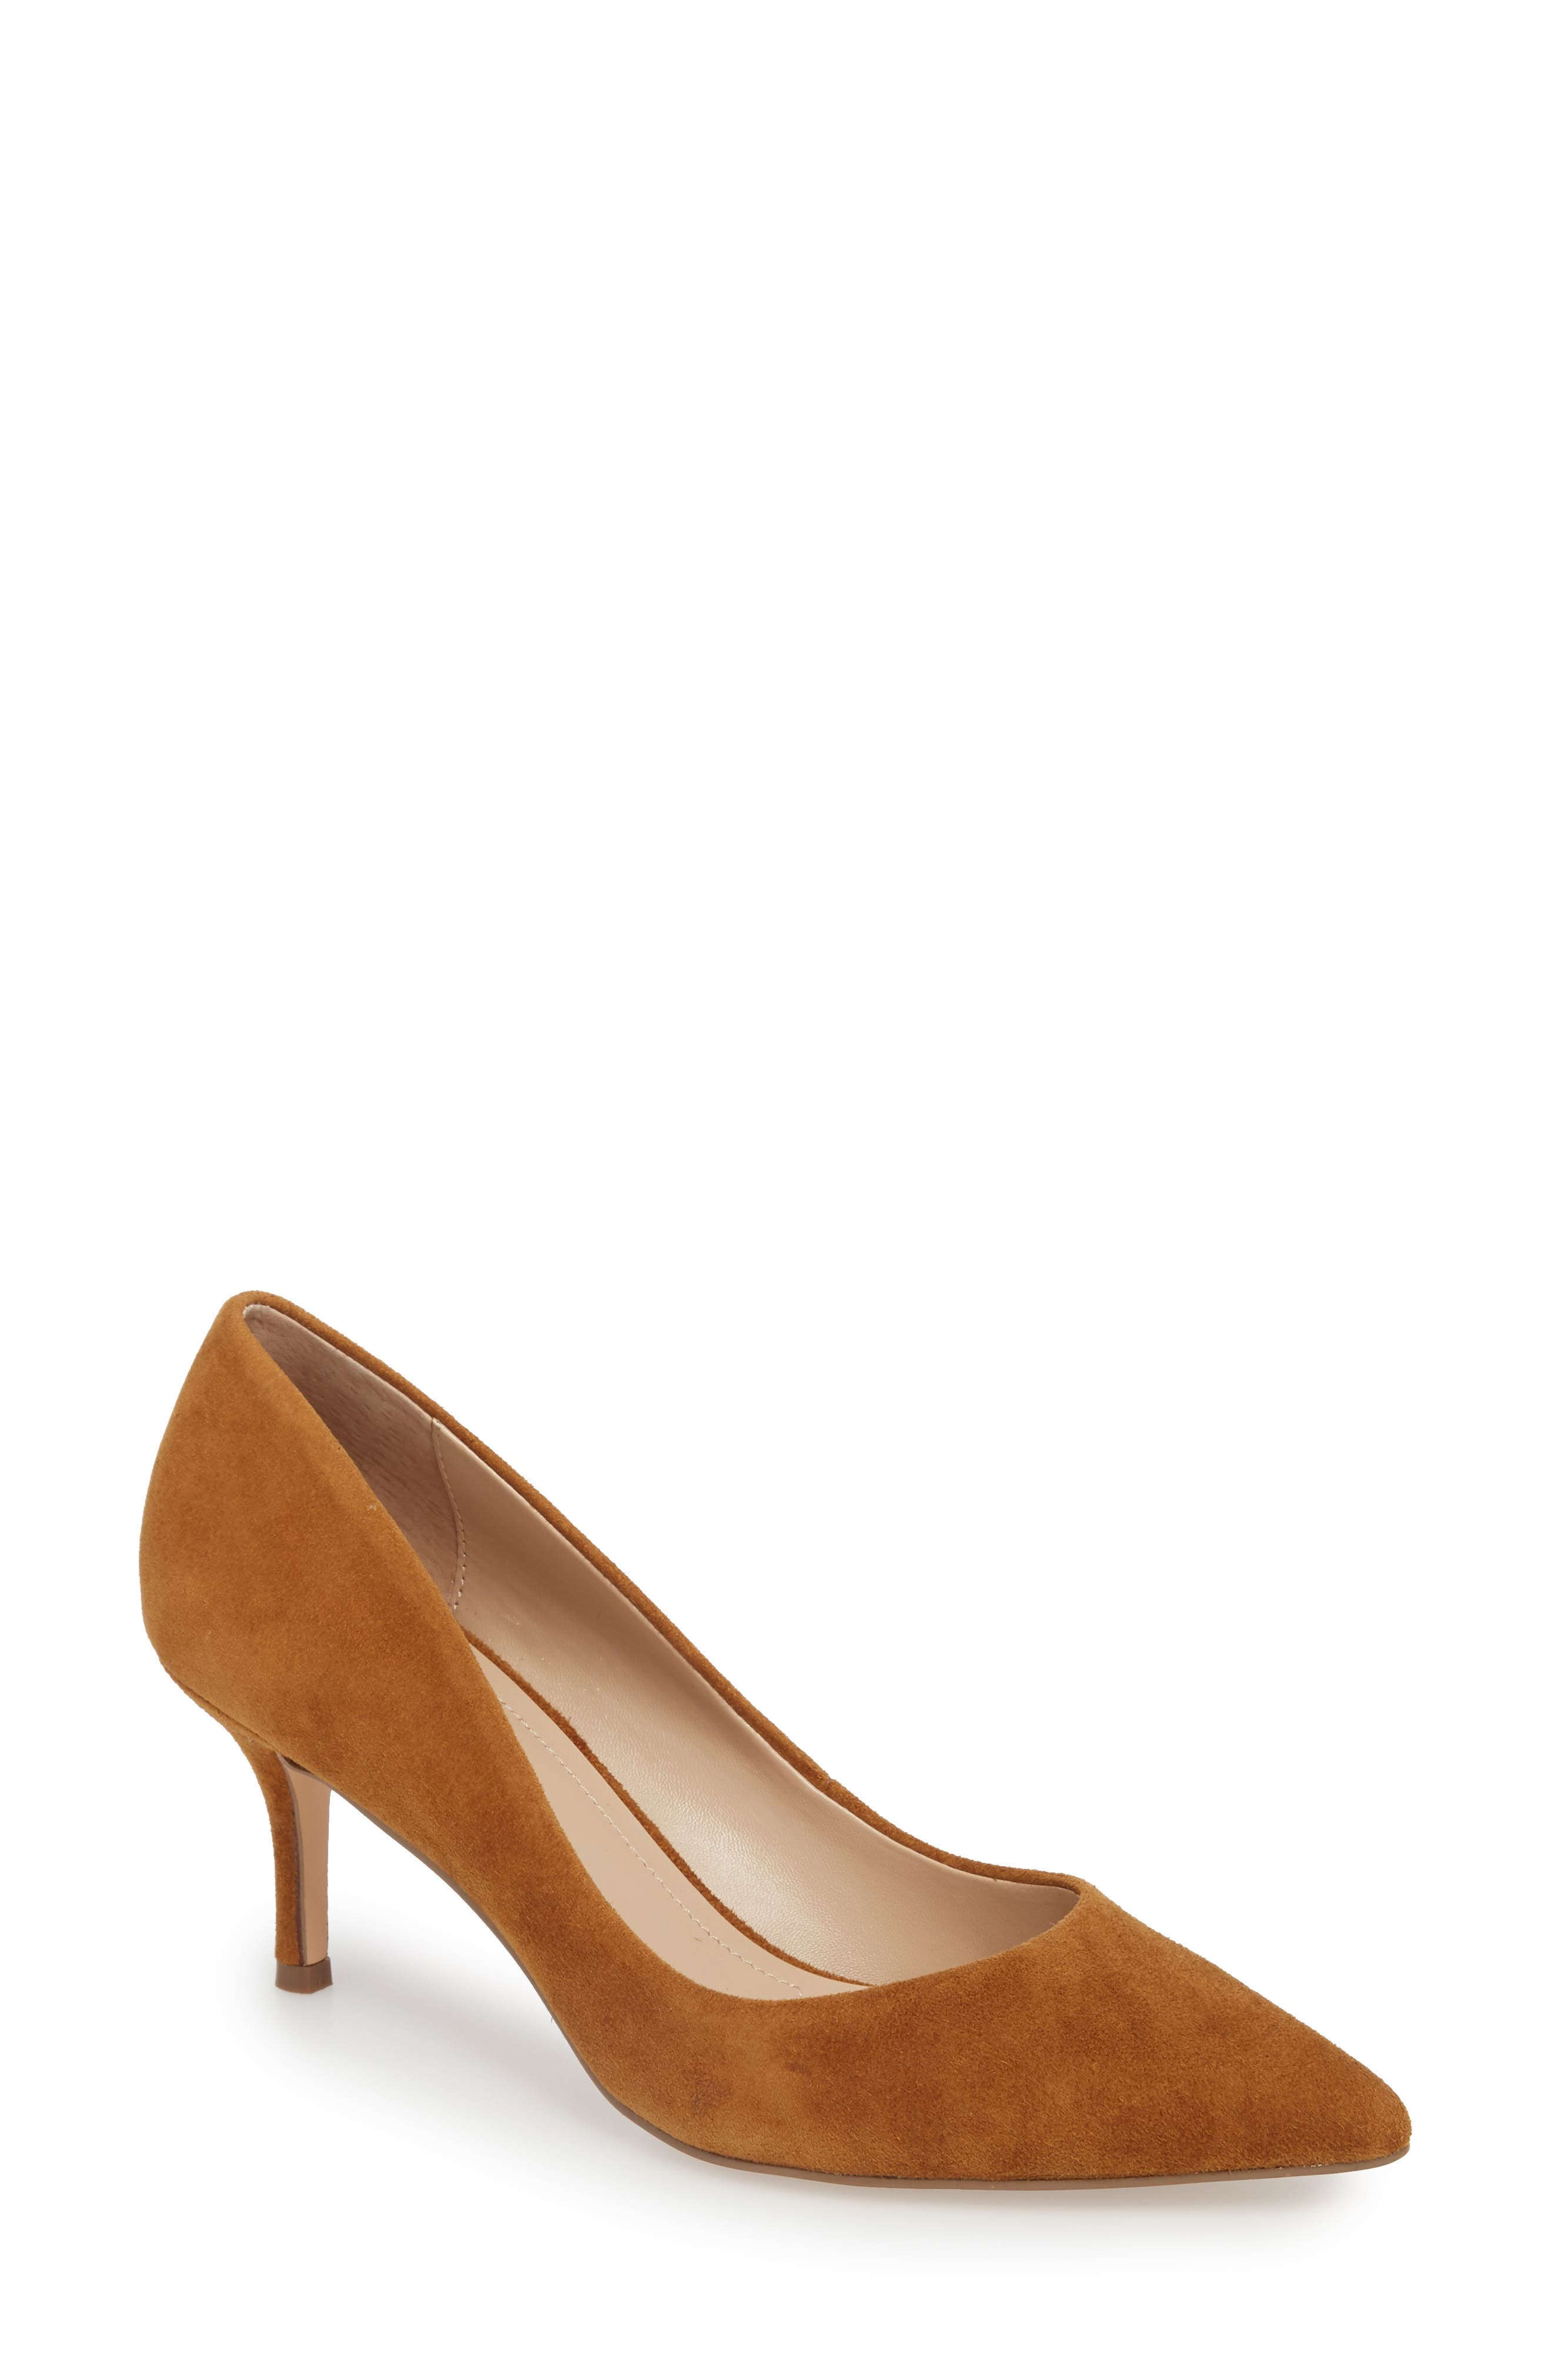 Addie Pump,                             Main thumbnail 1, color,                             AMBER SUEDE